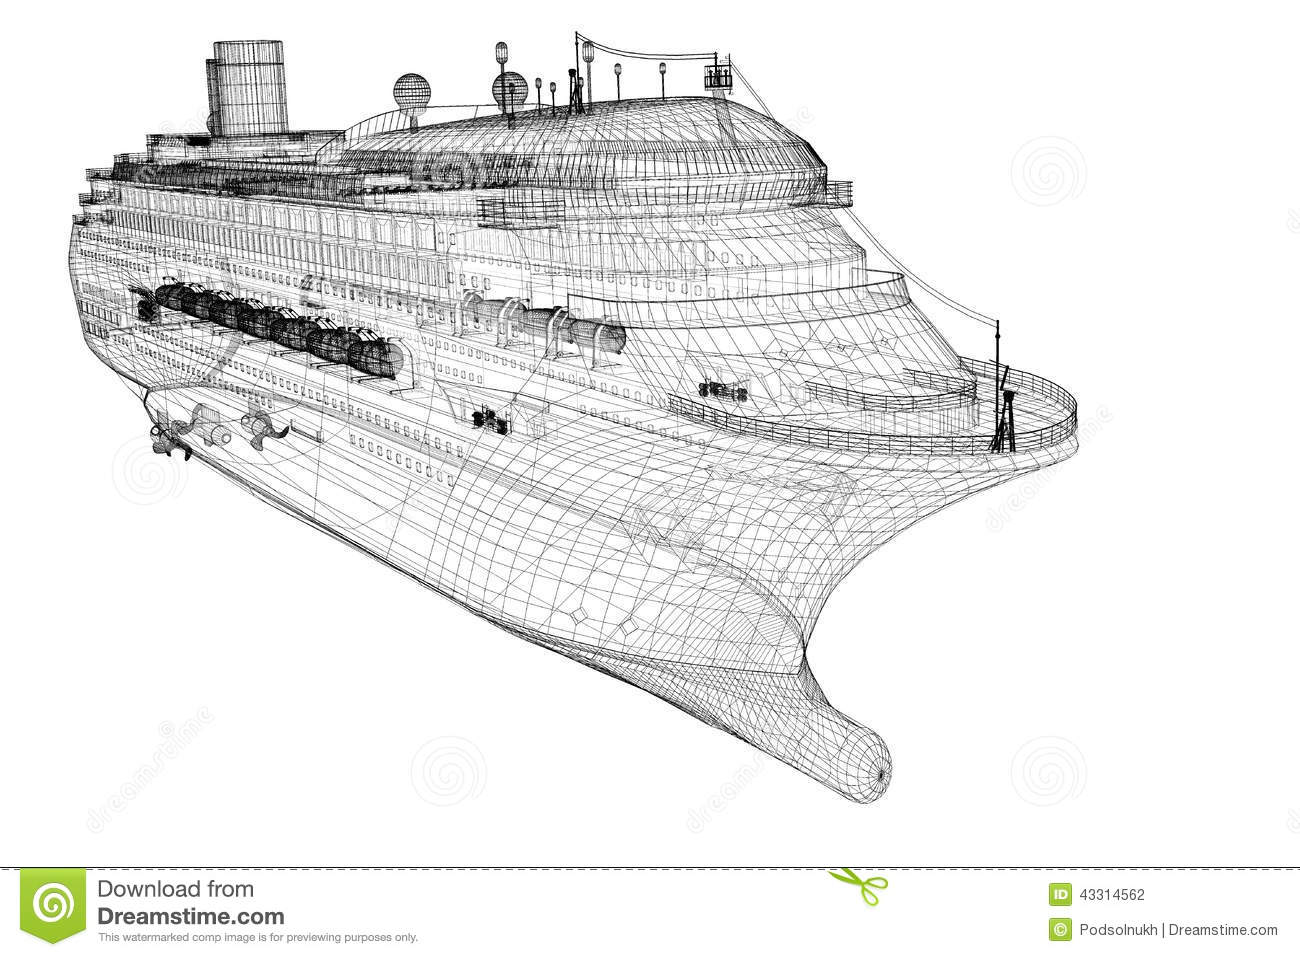 Stock Photo Cruise Liner Ship Body Structure Wire Model Image43314562 on Motor Wire Diagram